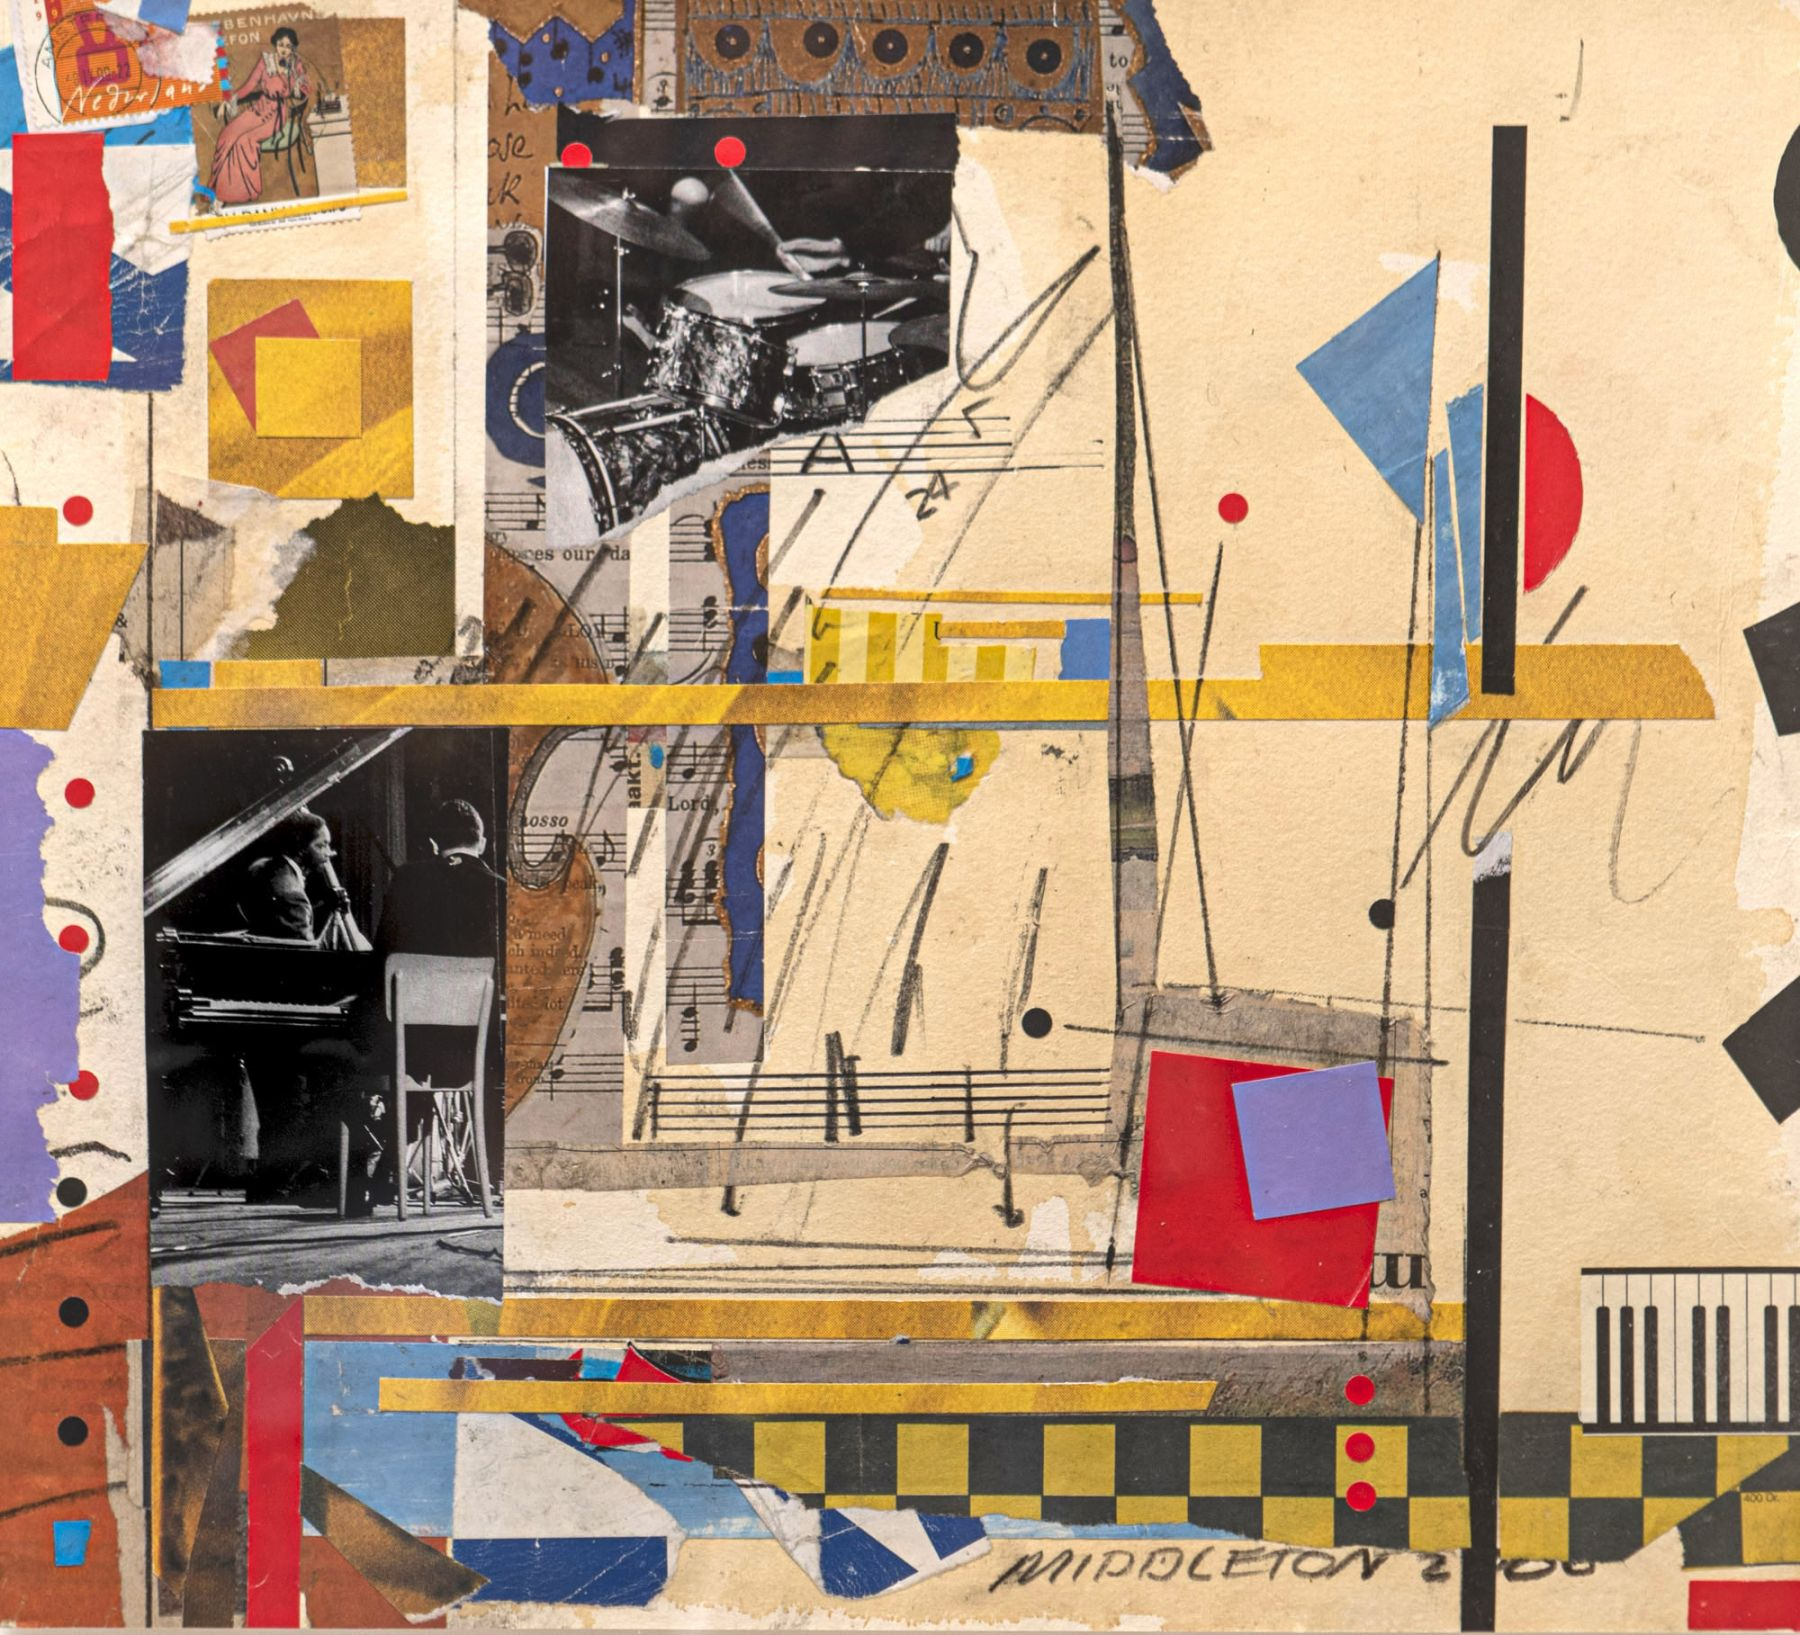 Sam Middleton, Untitled, 2000, Mixed media collage, 11 1/2 x 12 1/2 in., Signed and dated, lower right. Abstract work with geometric squares, angled lines and spheres. Sam Middleton was one of the leading 20th-century American artists, and is a mixed-media collage artist.